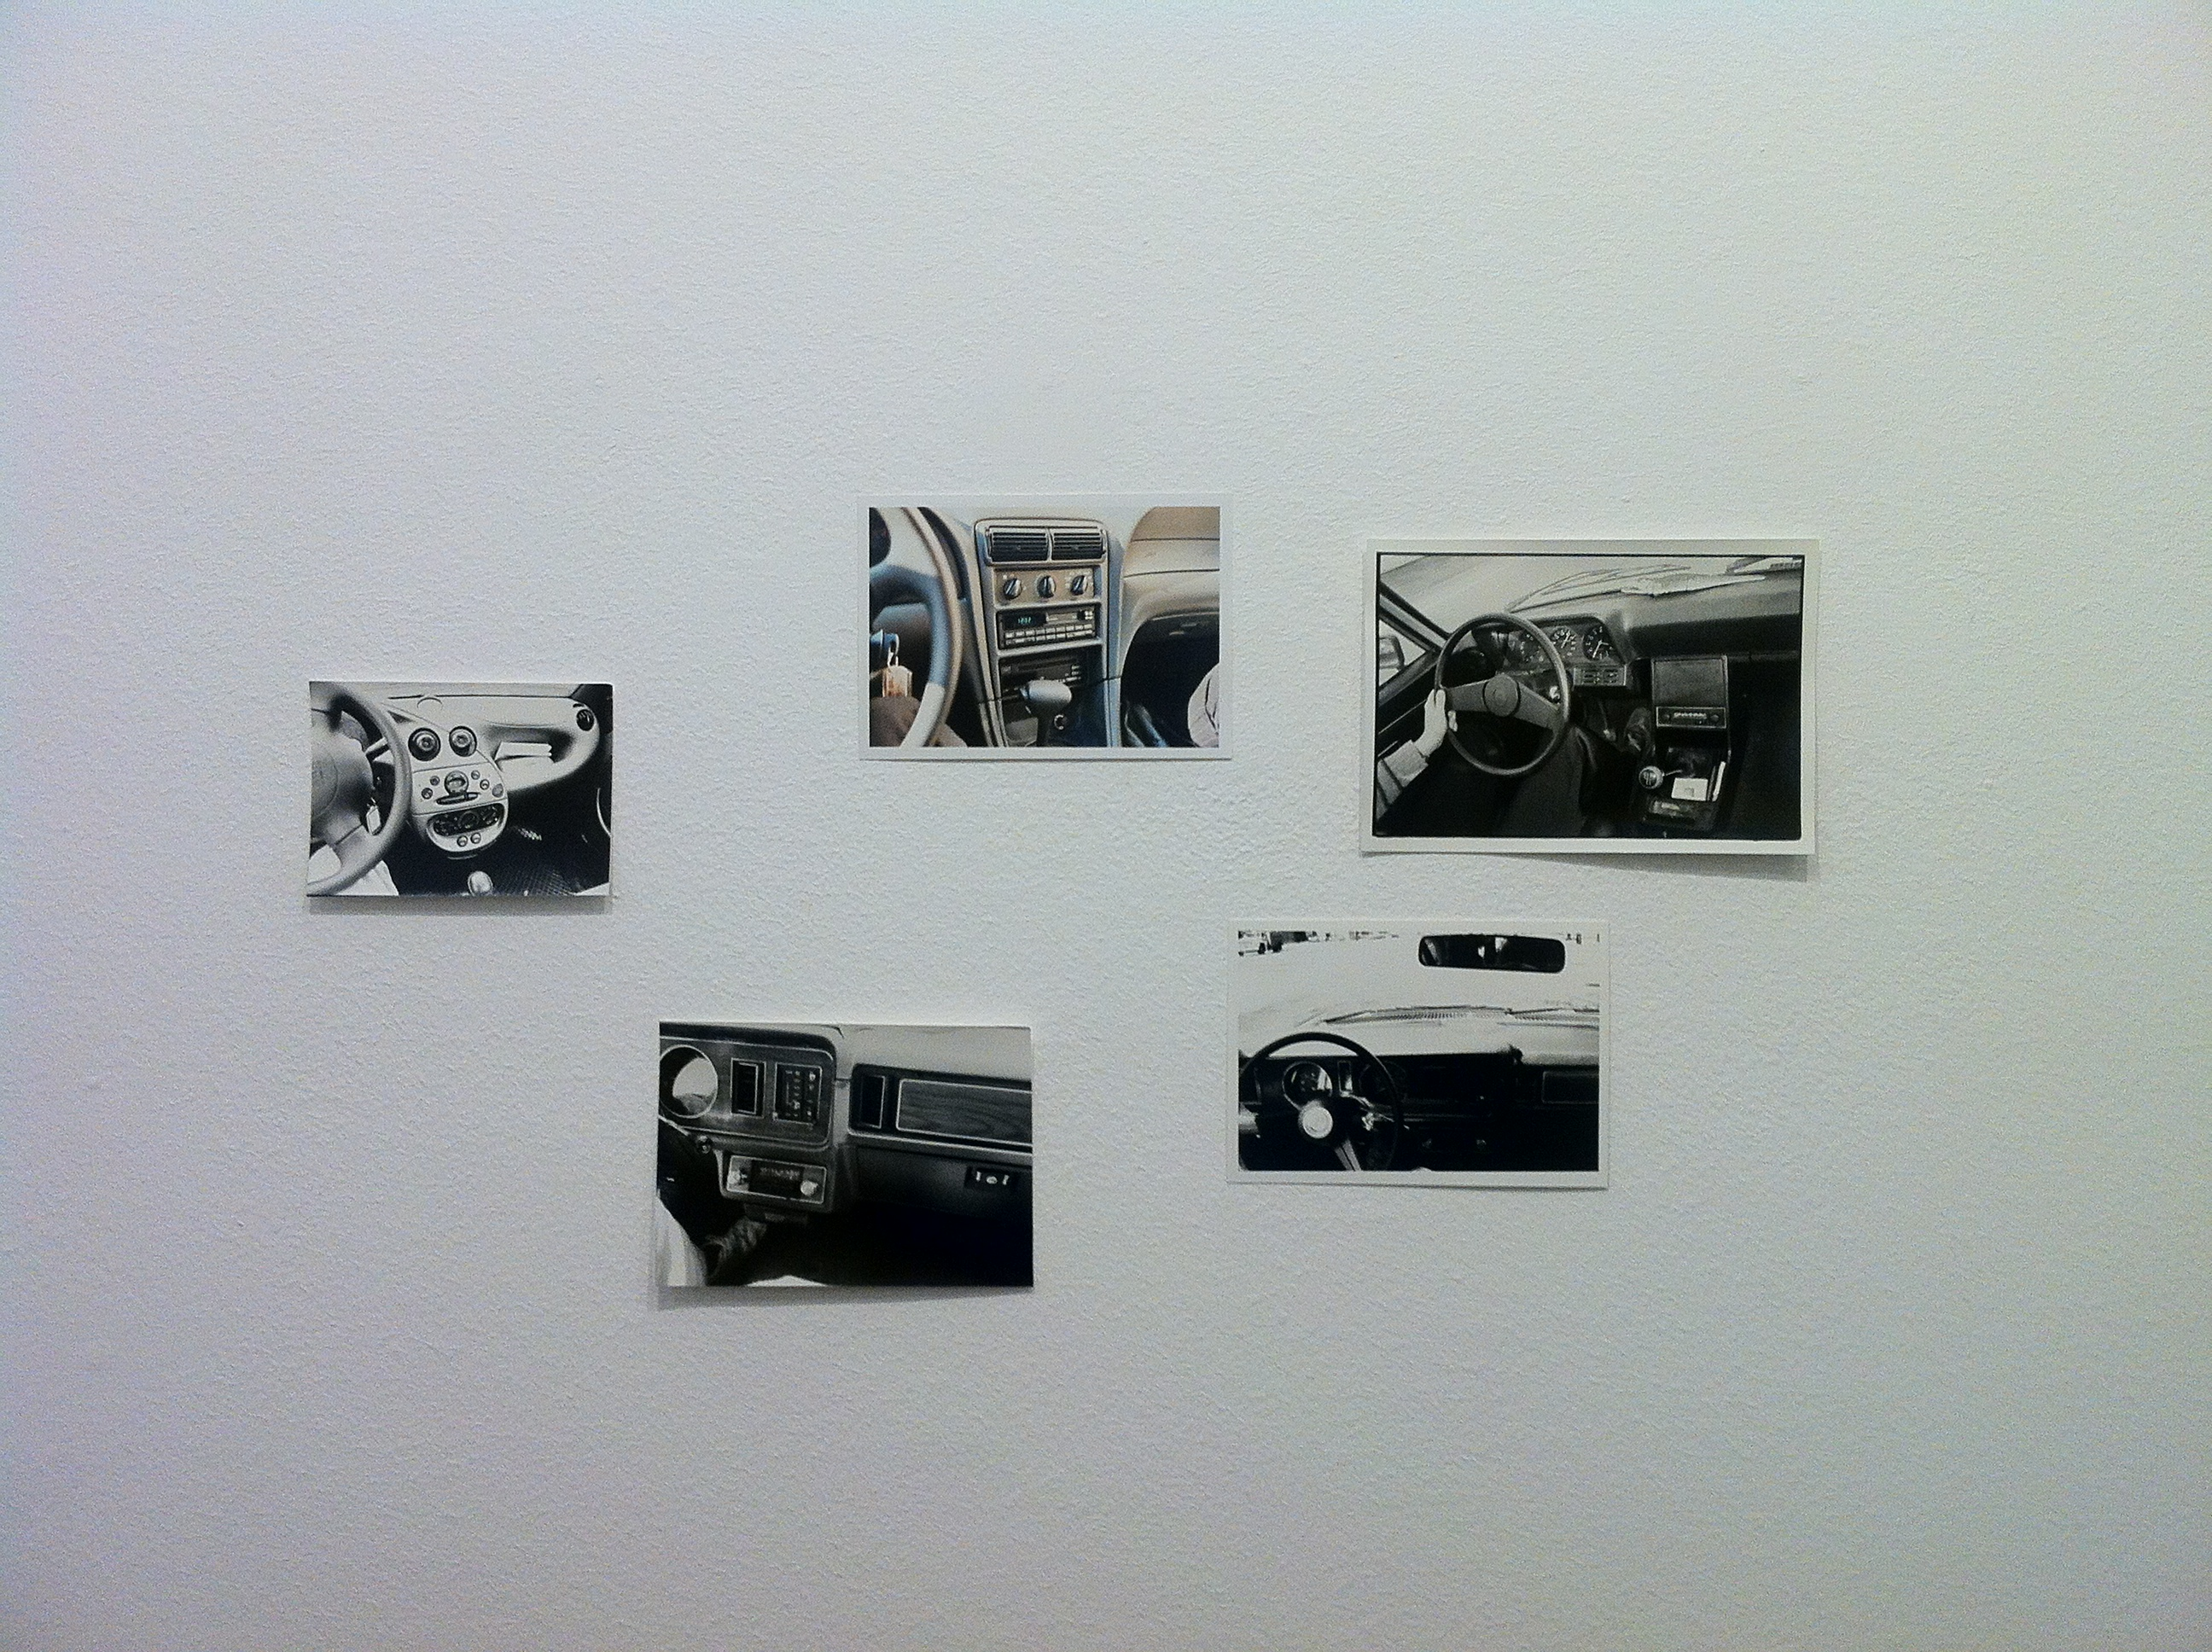 Car Radios Photographed while Good Music was Playing, 1970 – 1990 |  | ProjecteSD